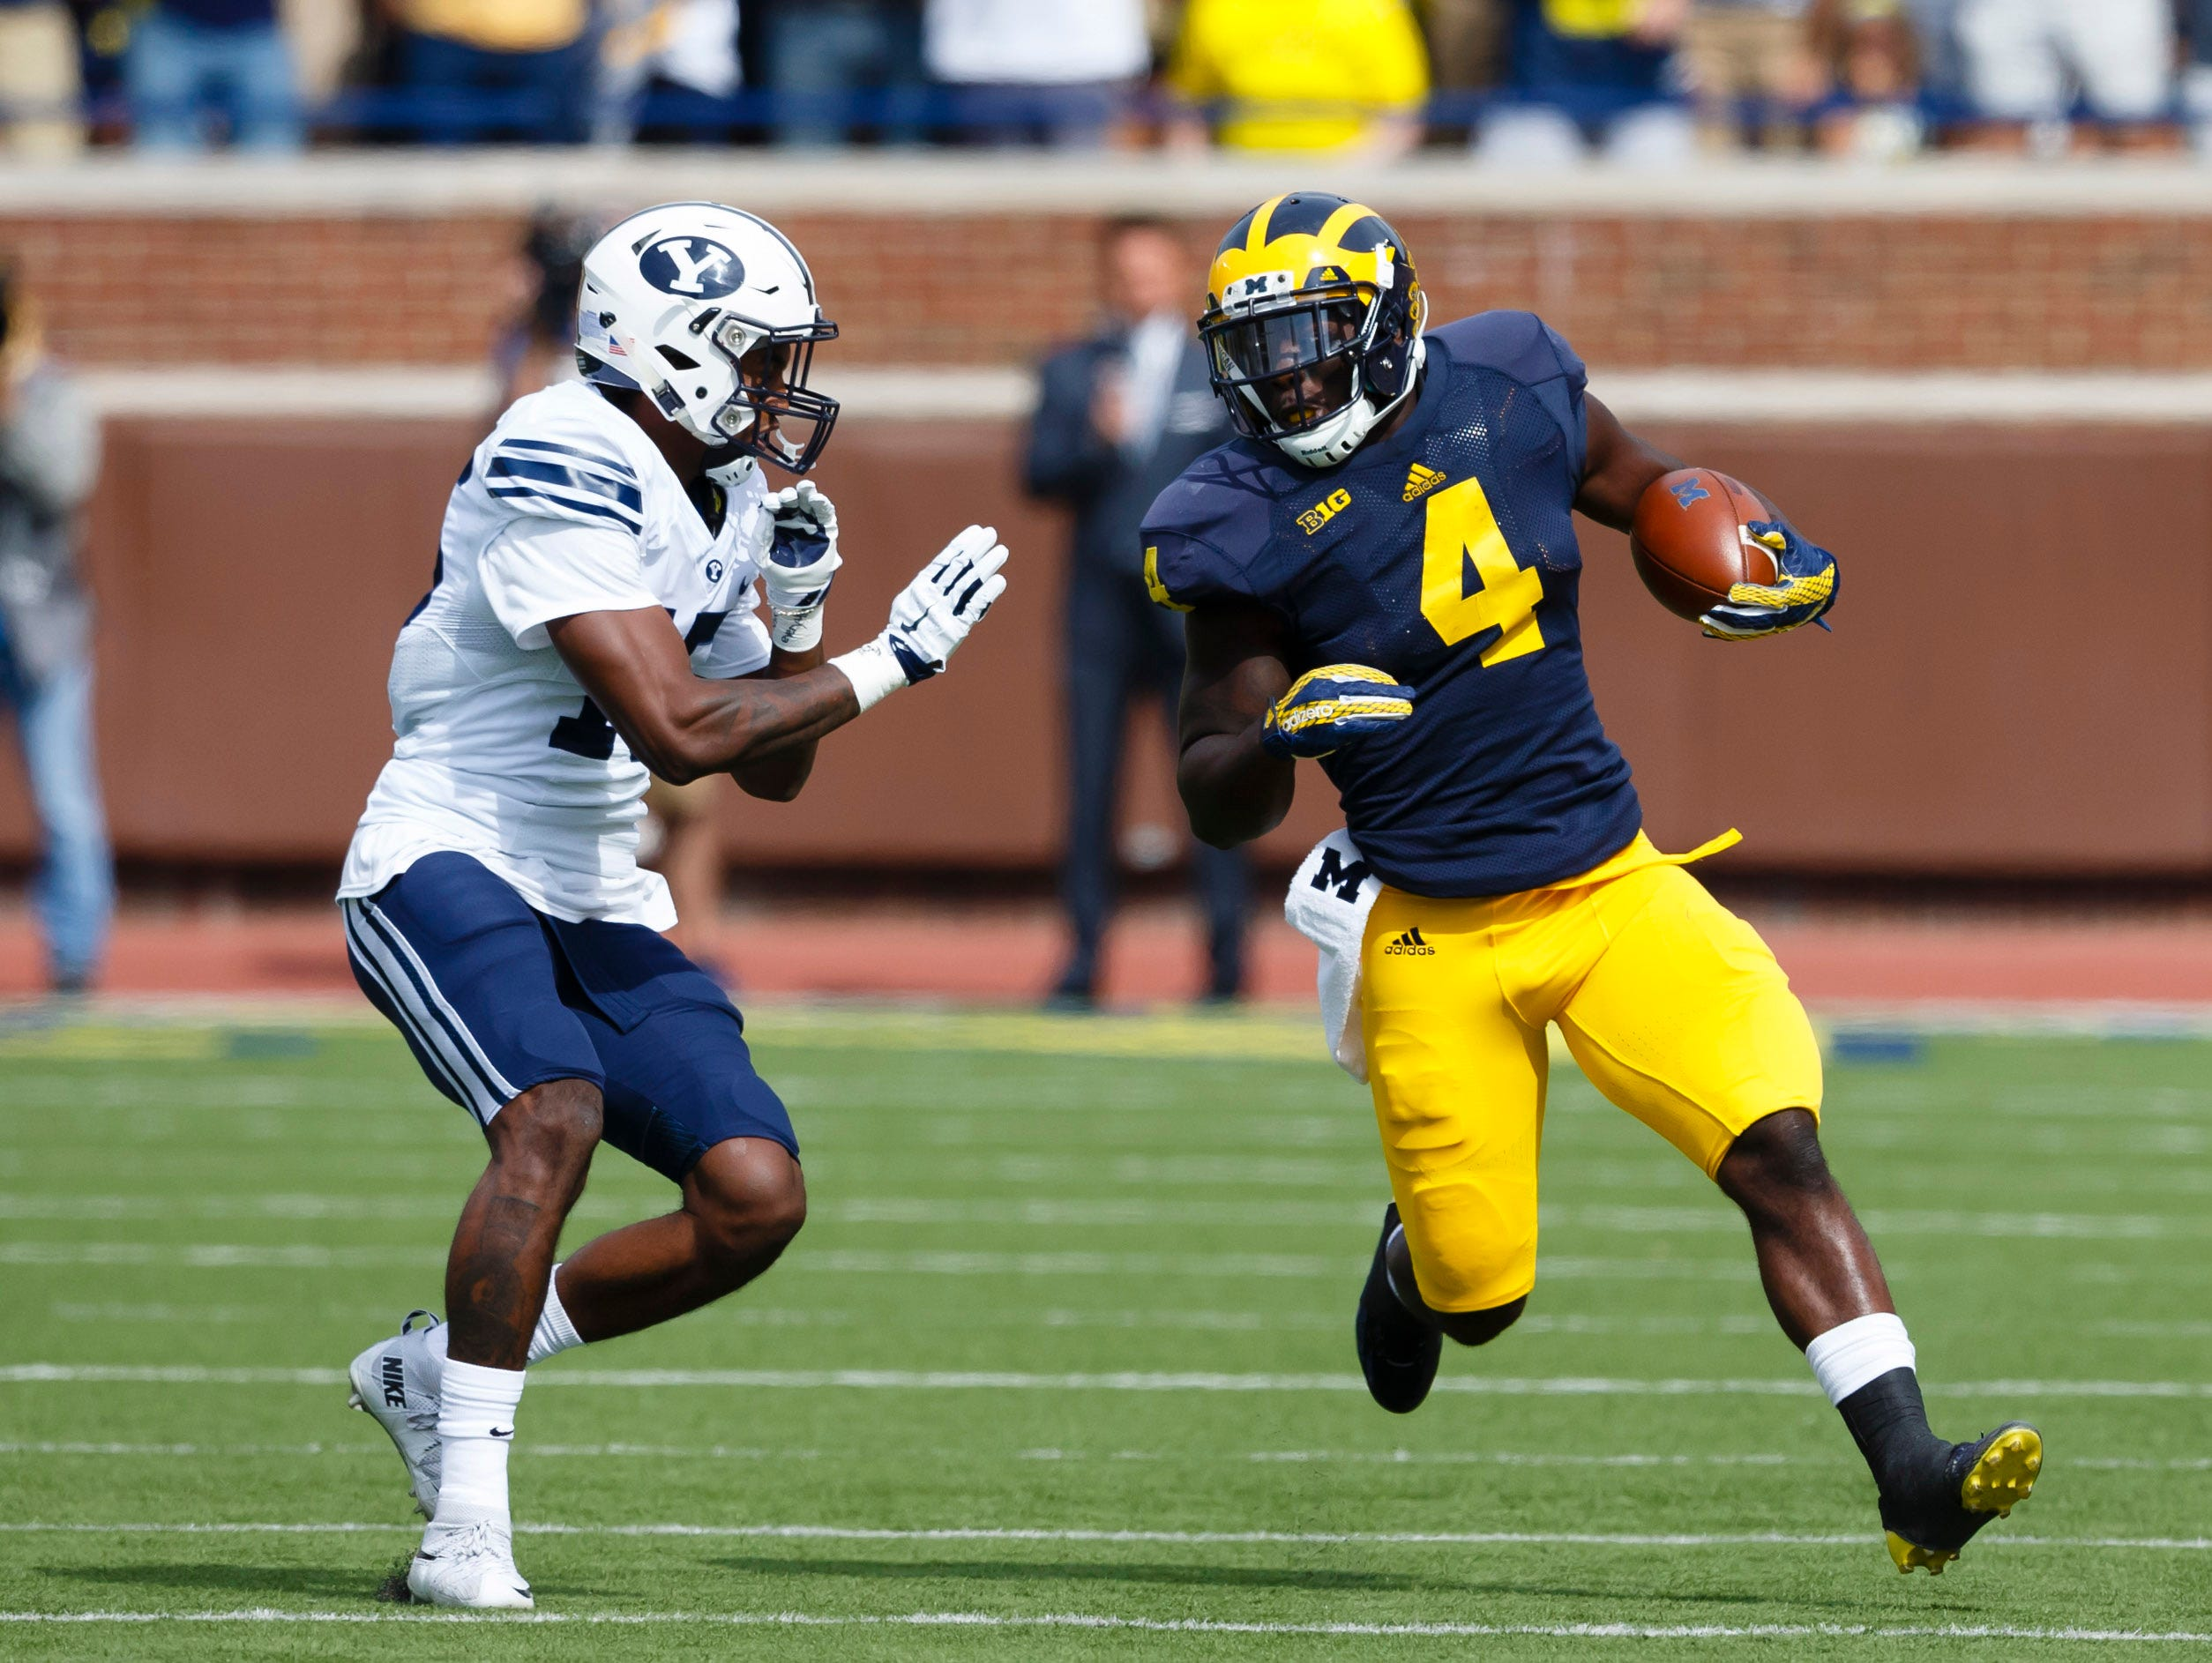 Sep 26, 2015; Ann Arbor, MI, USA; Michigan Wolverines running back De'Veon Smith (4) rushes on Brigham Young Cougars defensive back Michael Davis (15) in the first quarter at Michigan Stadium.